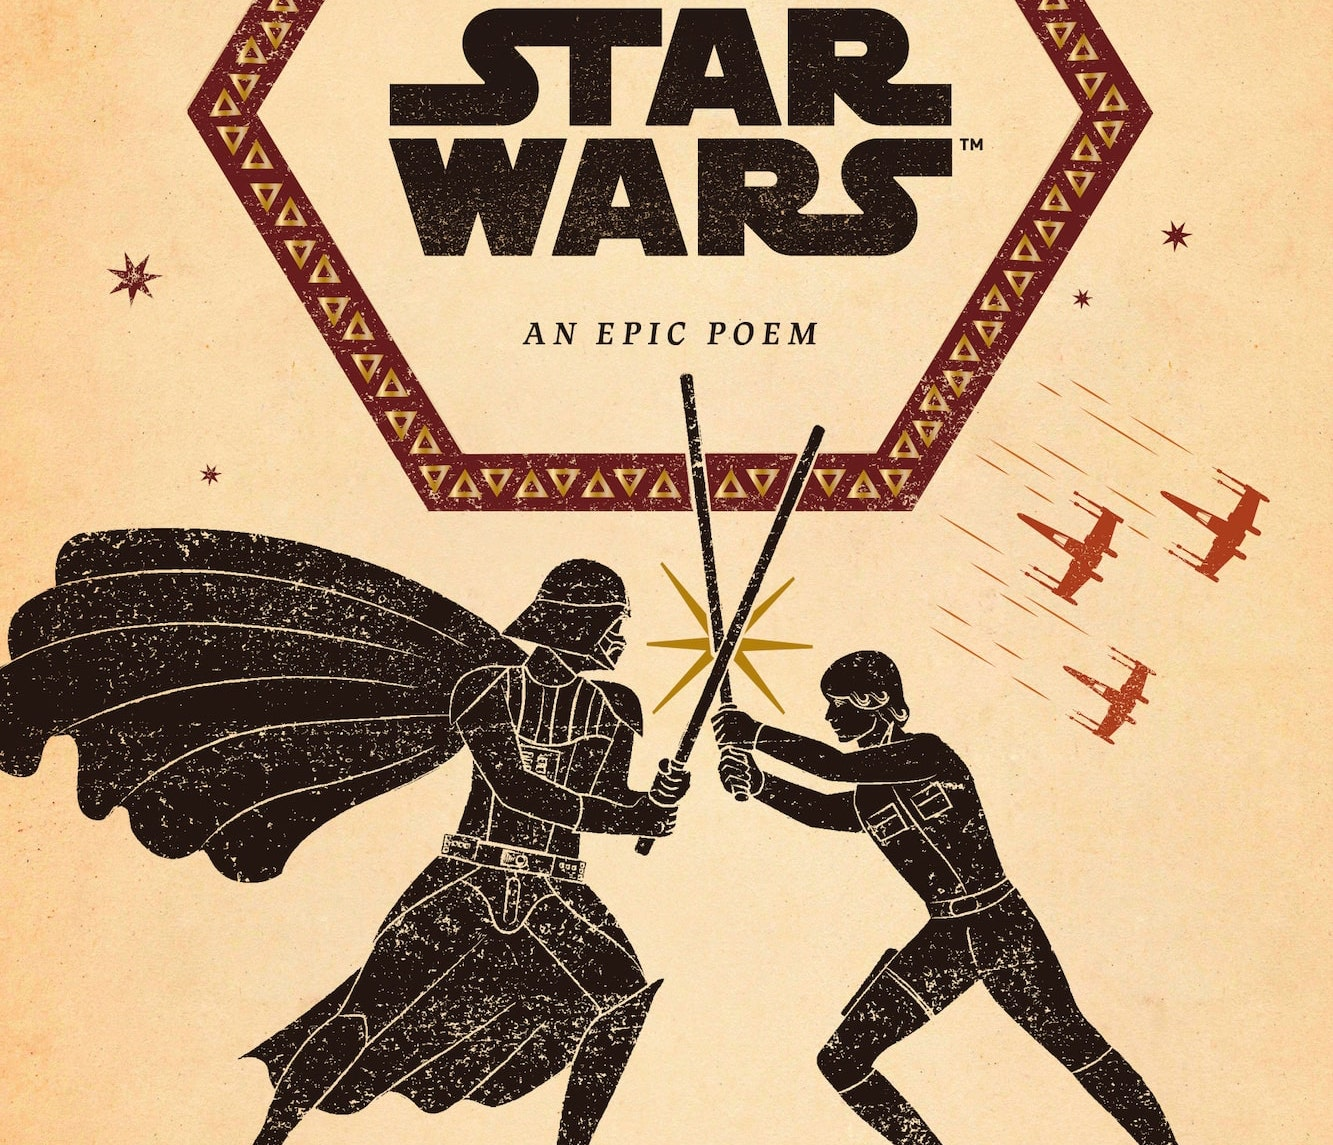 EXCLUSIVE Preview: The Odyssey of Star Wars: An Epic Poem